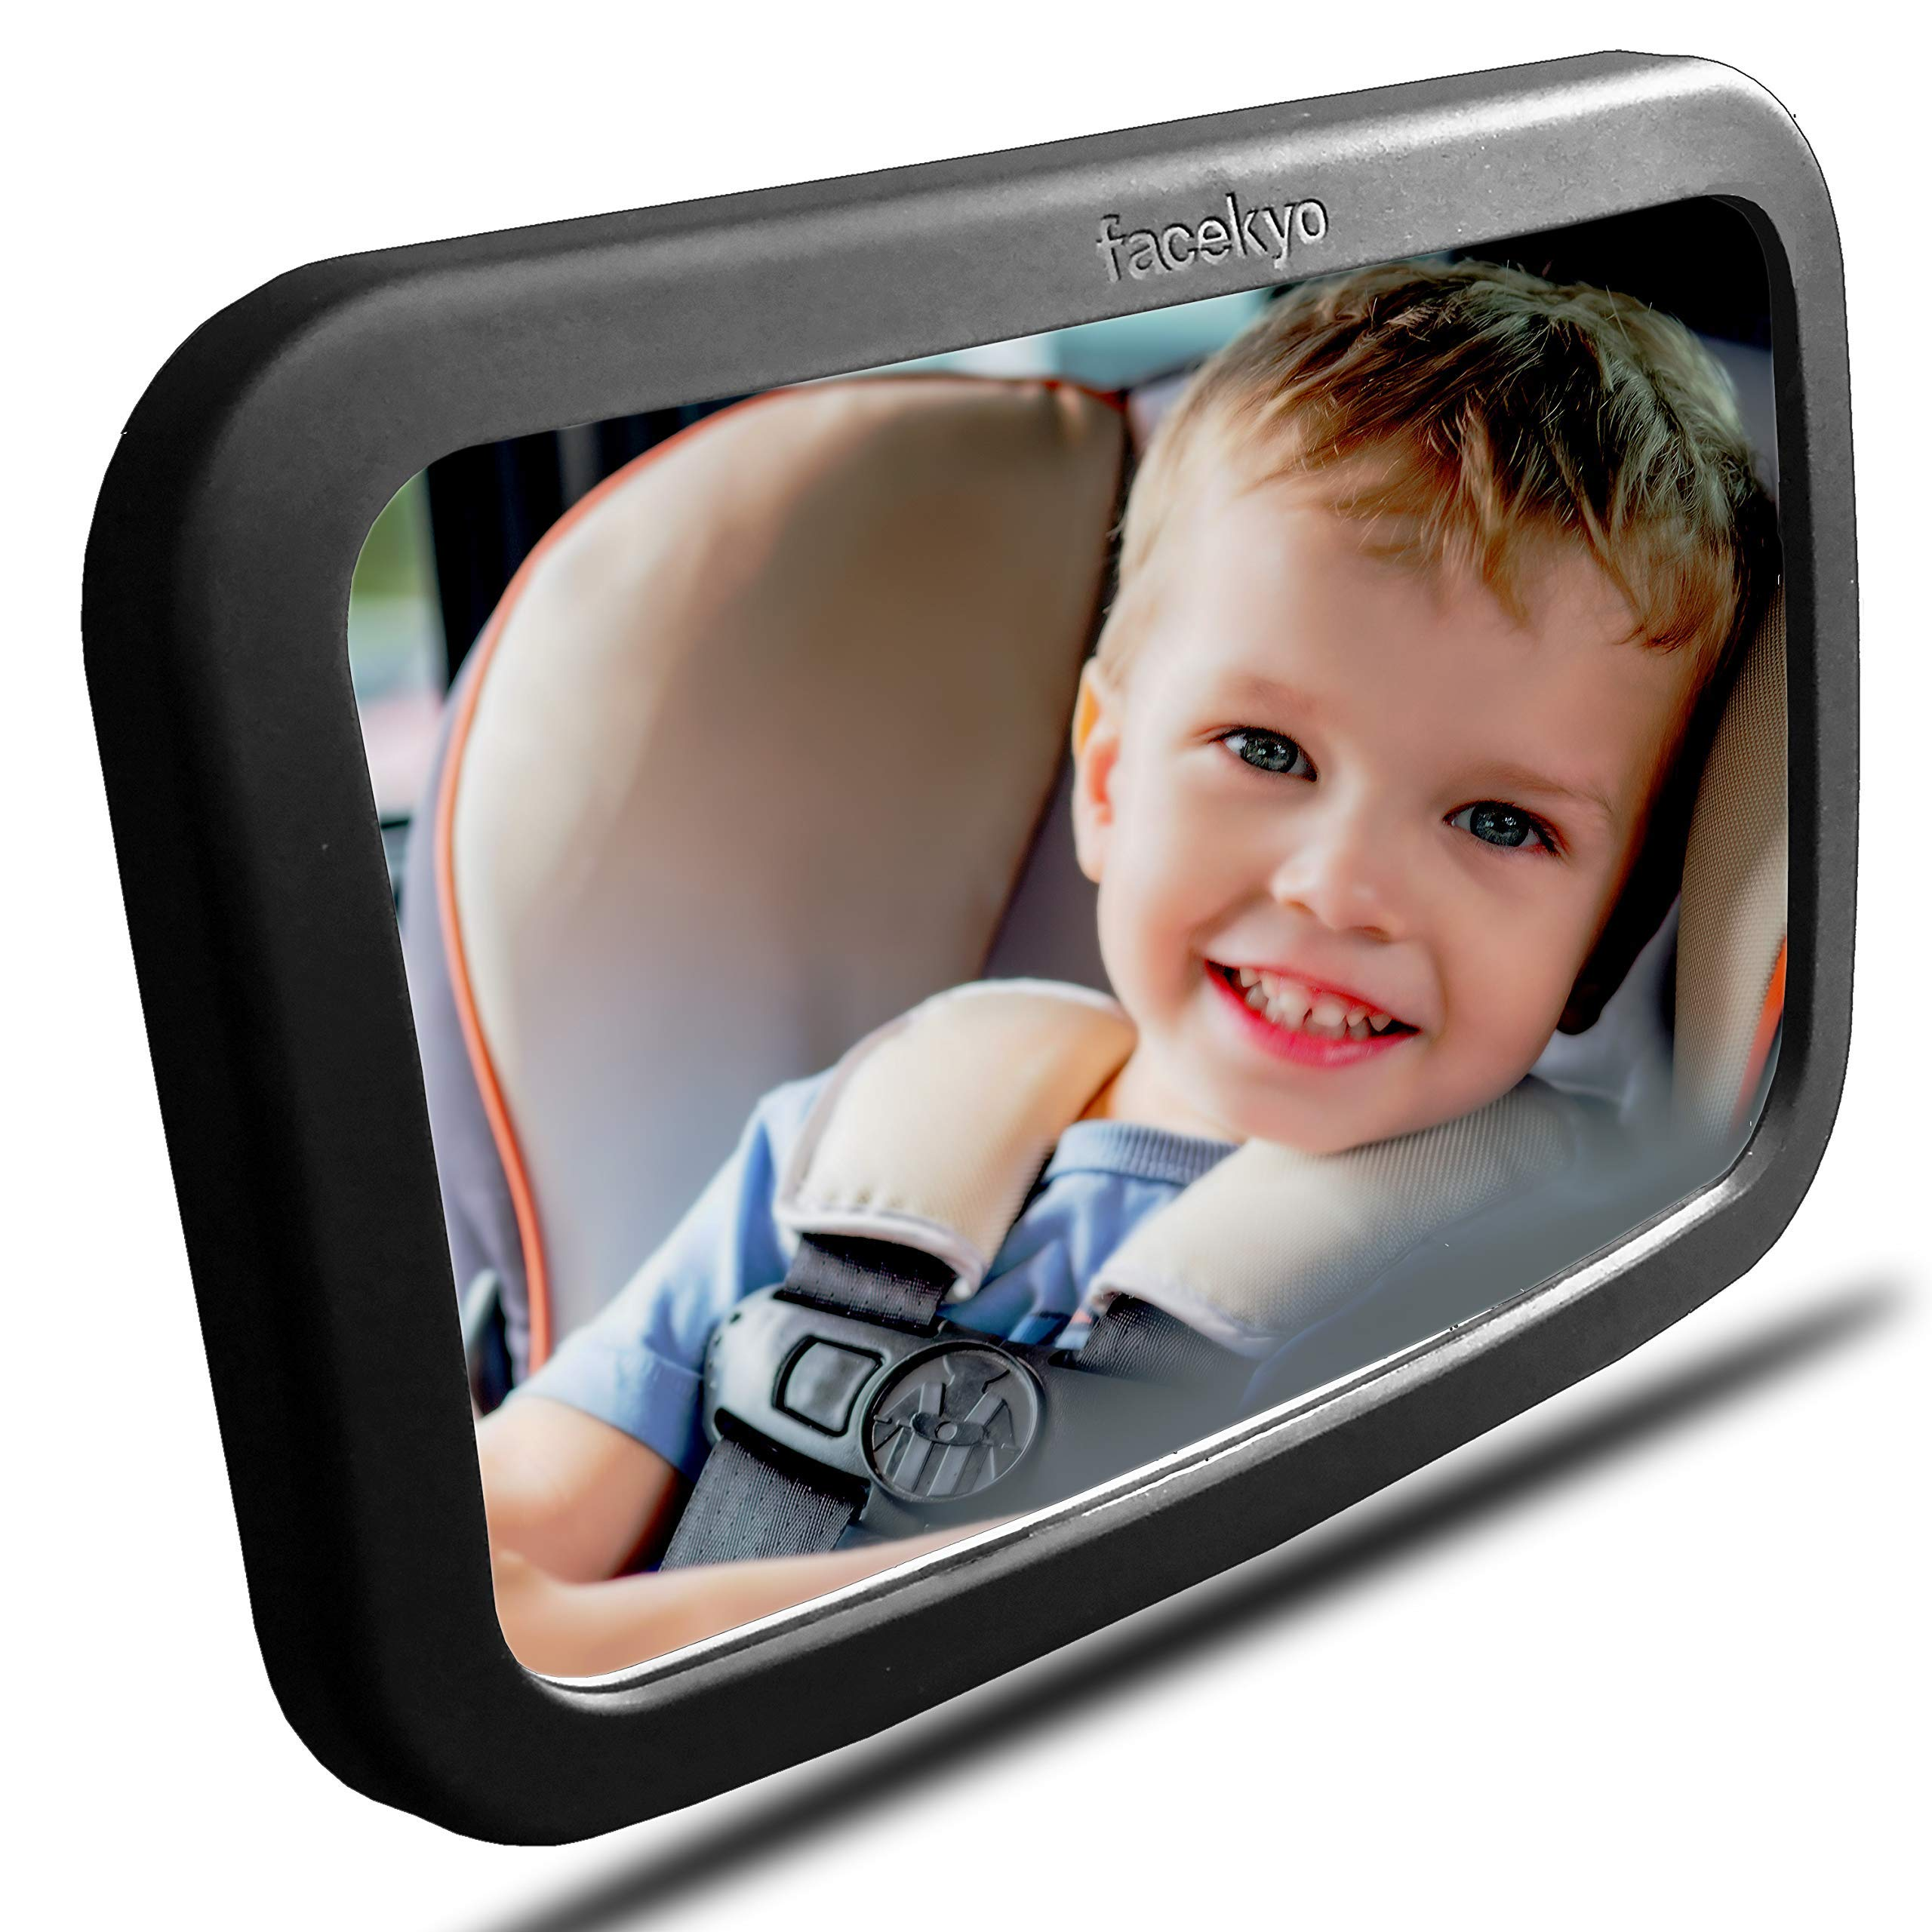 Baby Mirror for Car   Baby Car Mirror   Huge Wide-Angled Without Shaking   Rear Facing Baby View Mirror   Baby Back Seat Mirror   No Assembly Required   TPU Soft Frame by Facekyo (Black) by FACEKYO